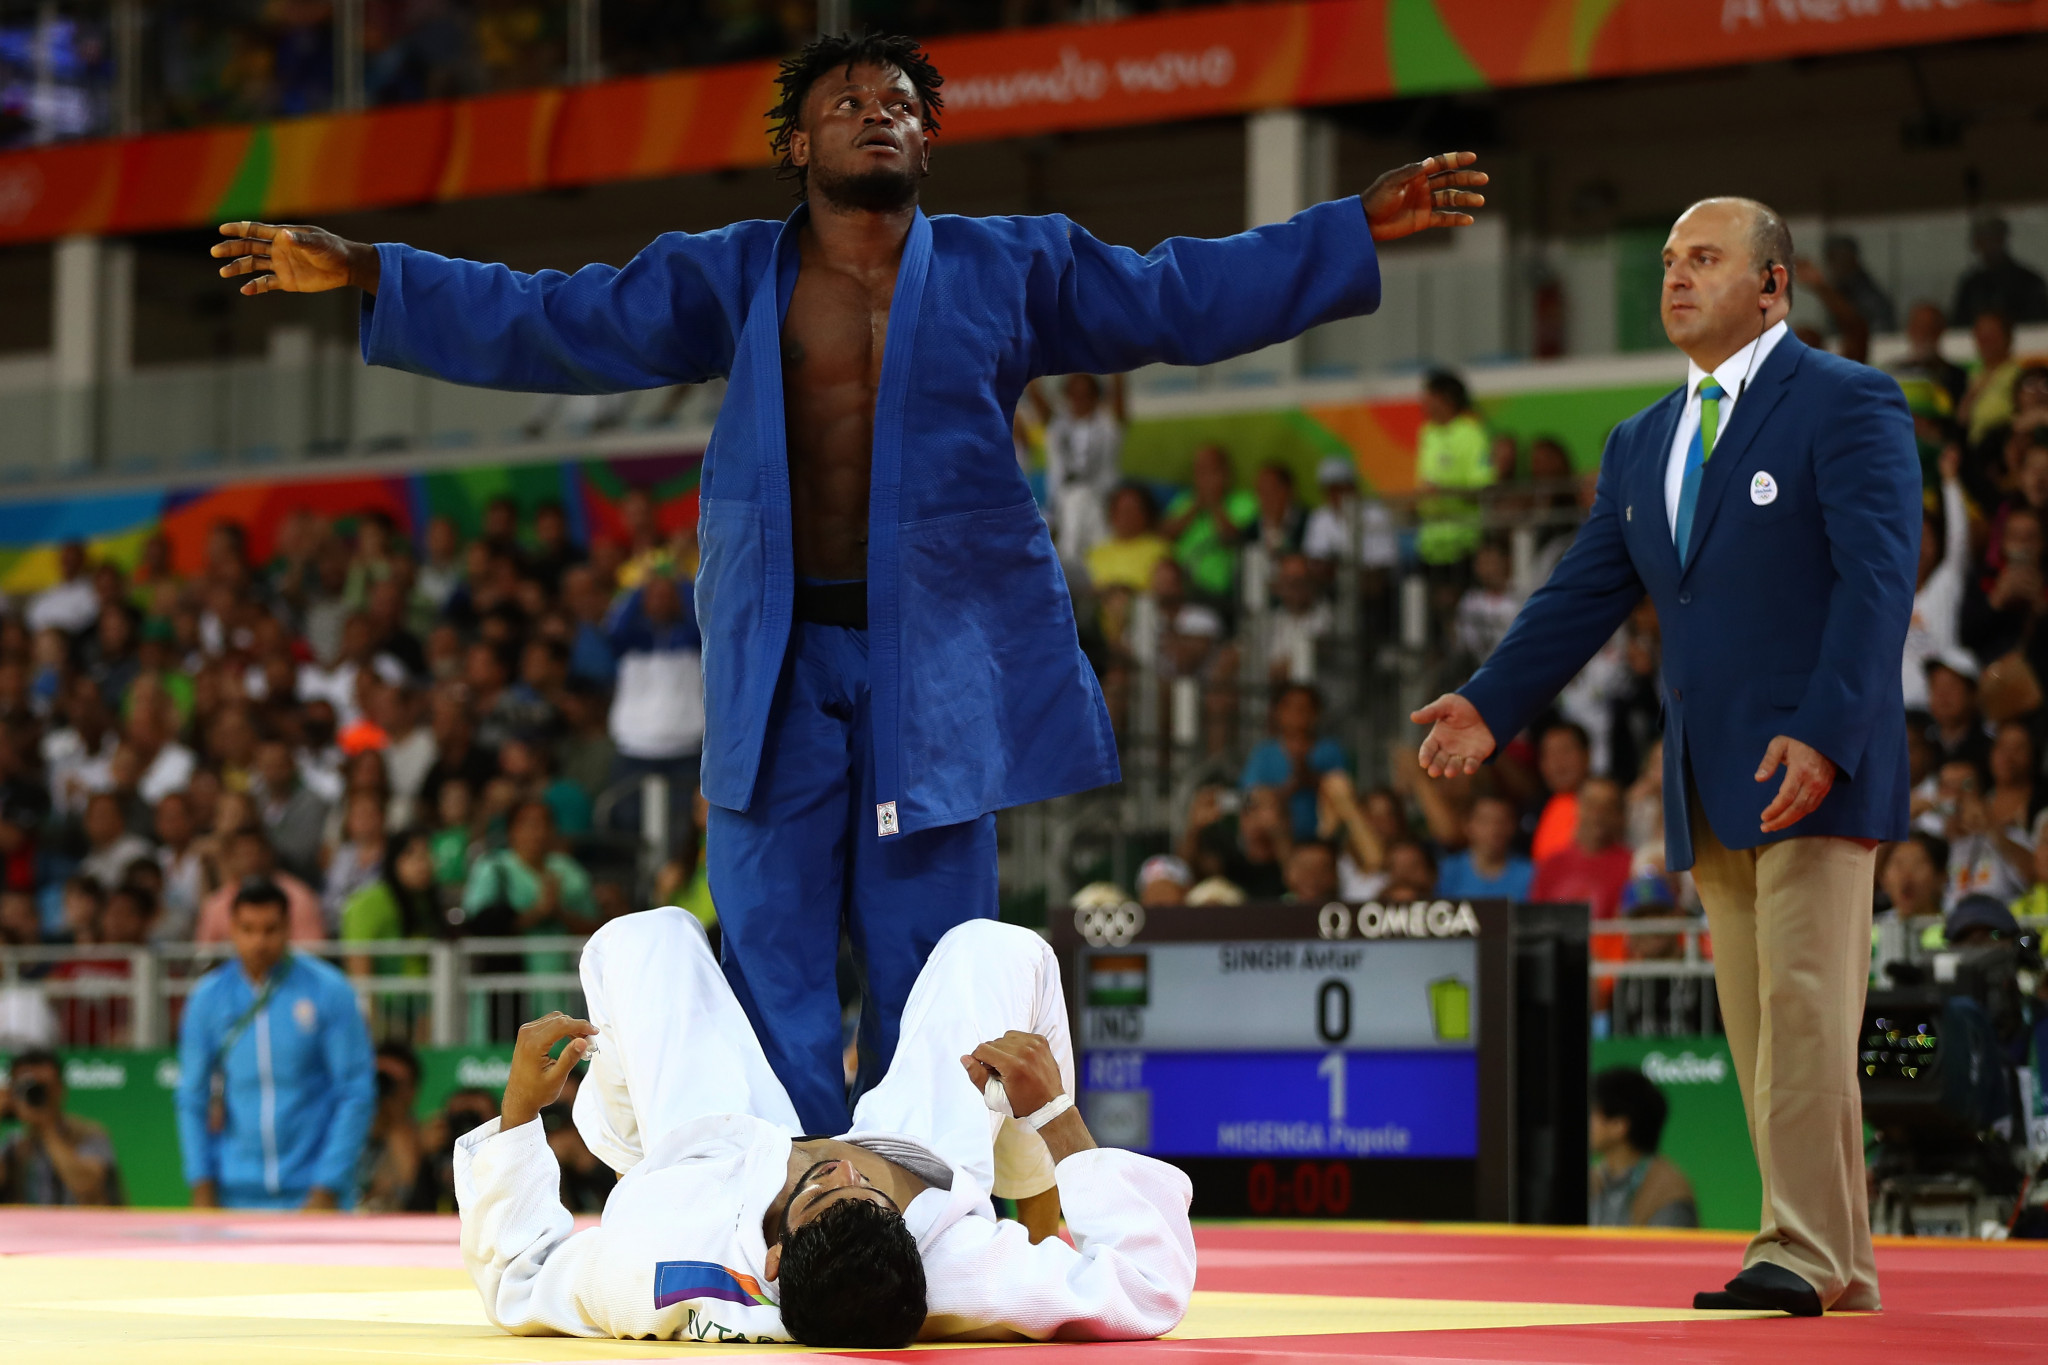 Popole Misenga was part of the Olympic Refugee Team when it made its debut at Rio 2016 ©Getty Images